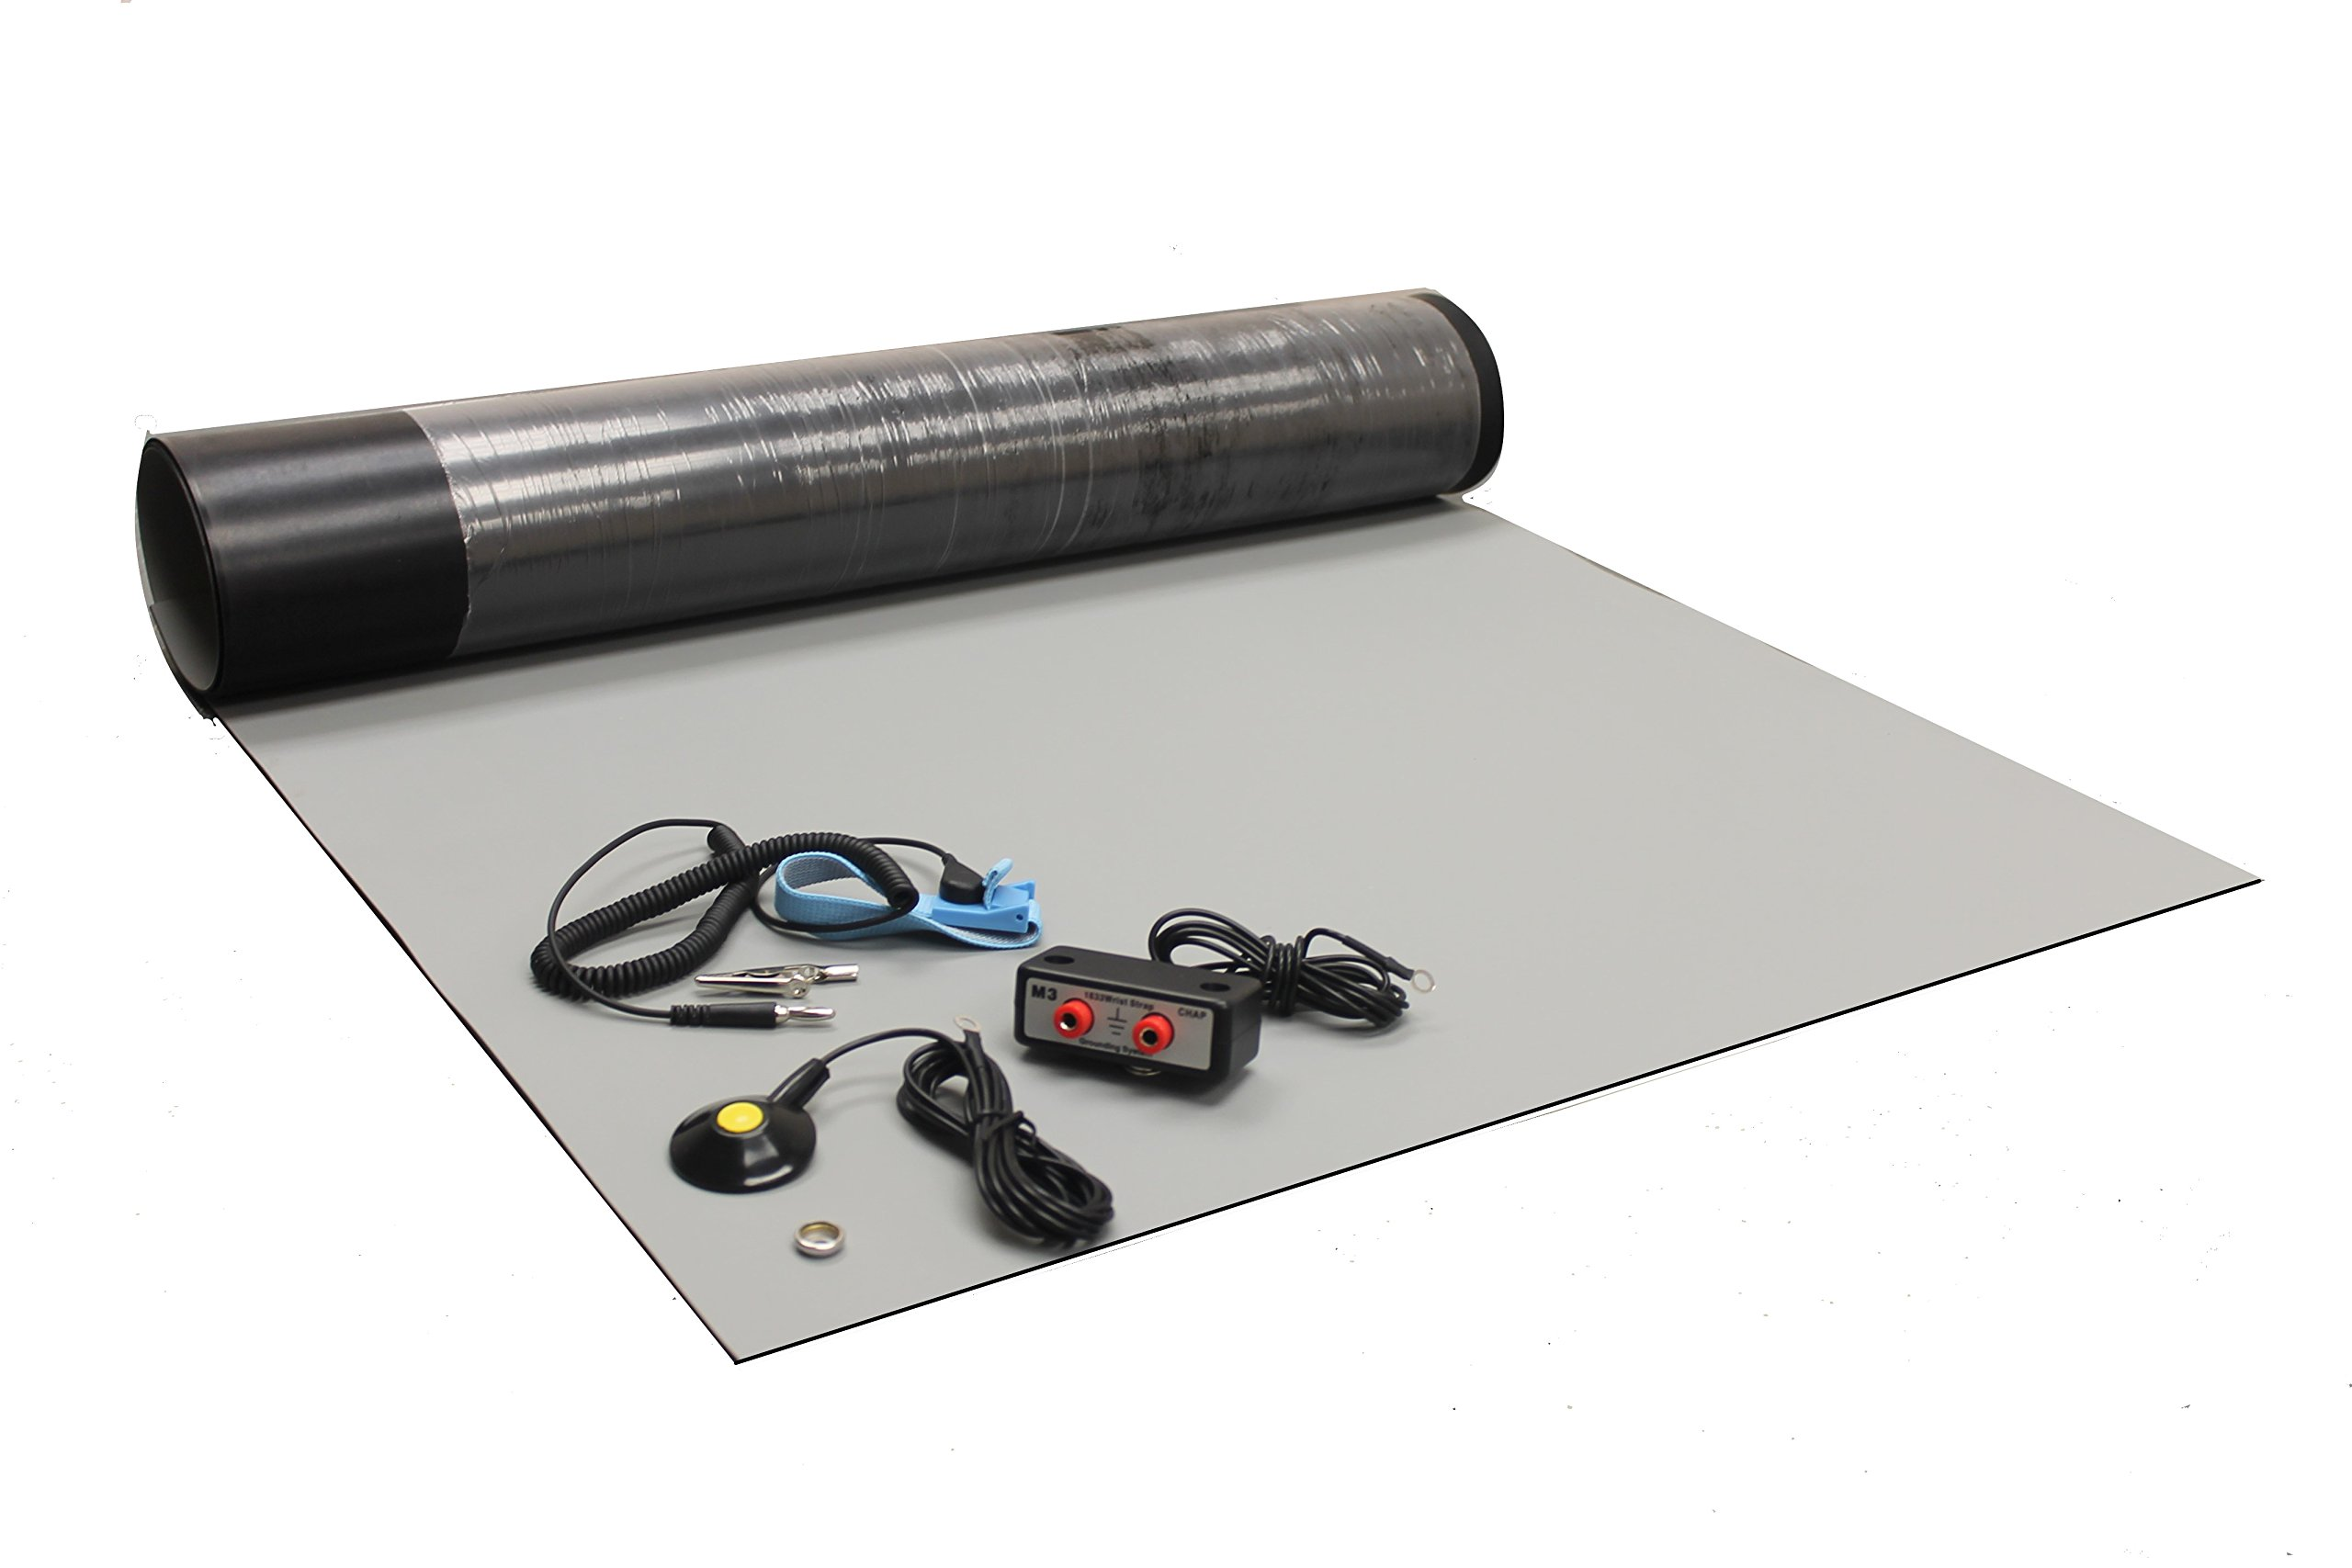 Rubber ESD Anti-Static HIGH Temperature Soldering MAT KIT-30'' X 72'' (2.5'x 6') - 0.08'' Thick- with Dual Bench and Wrist Strap-Gray